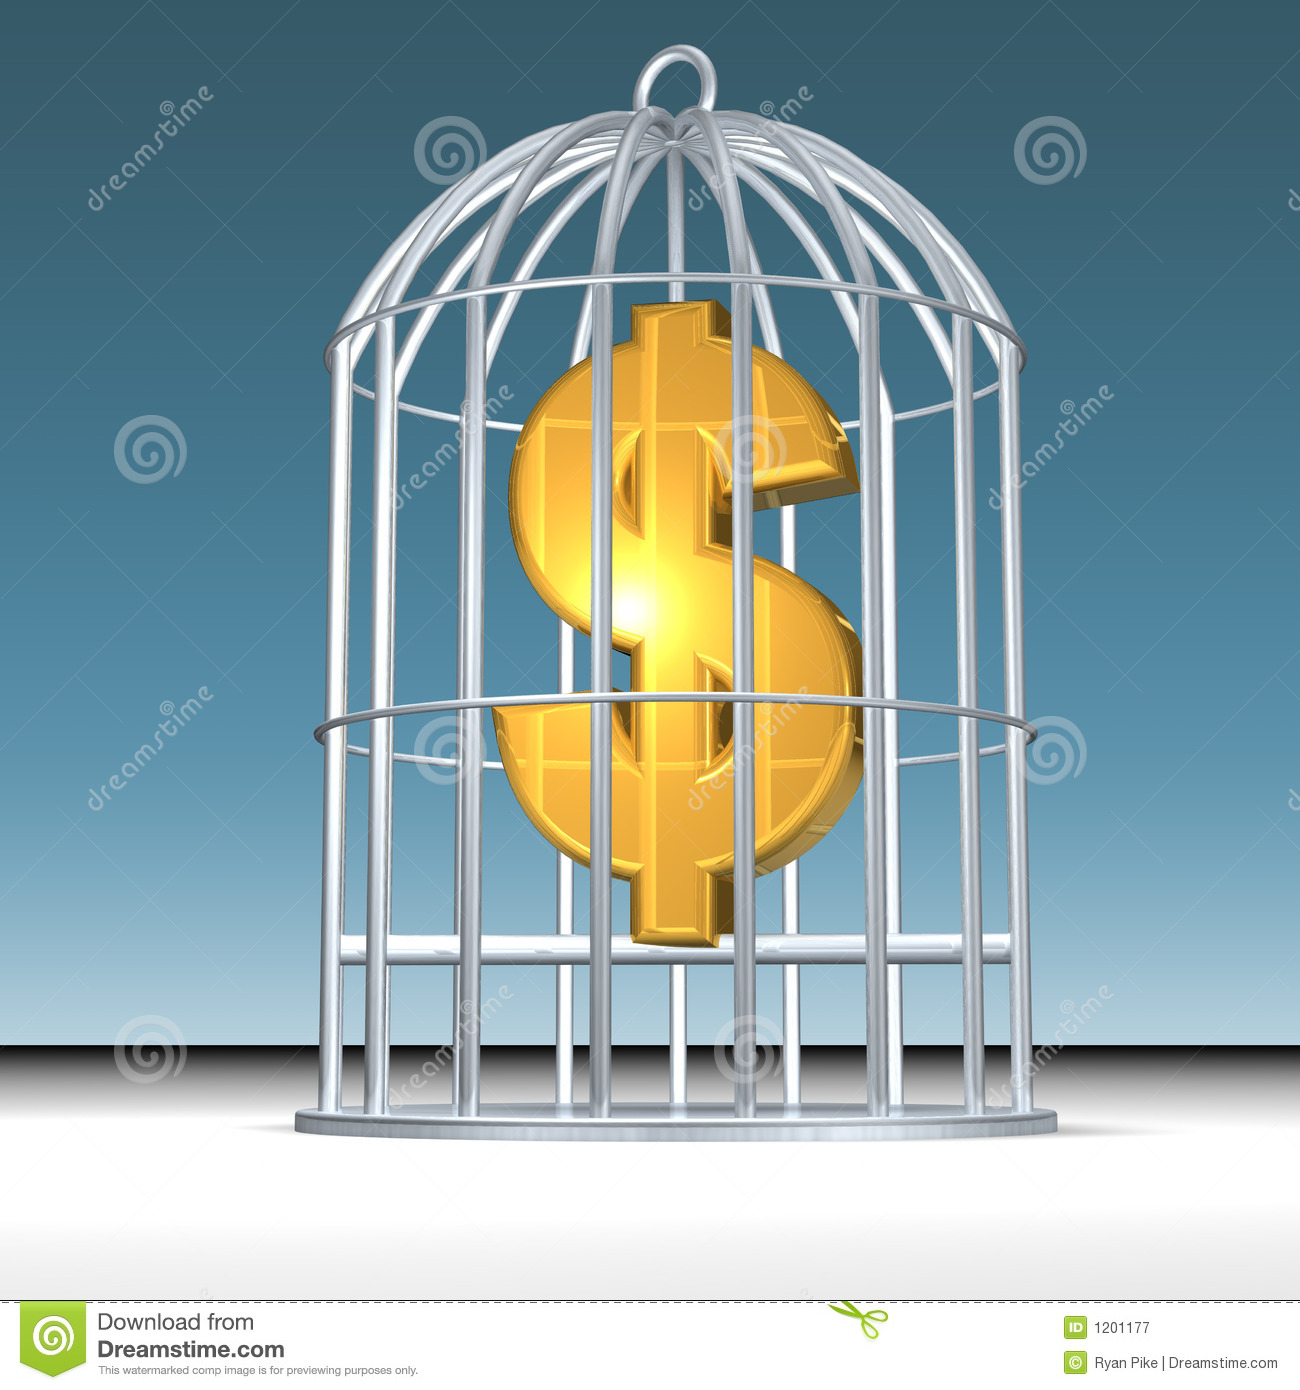 Trapped money